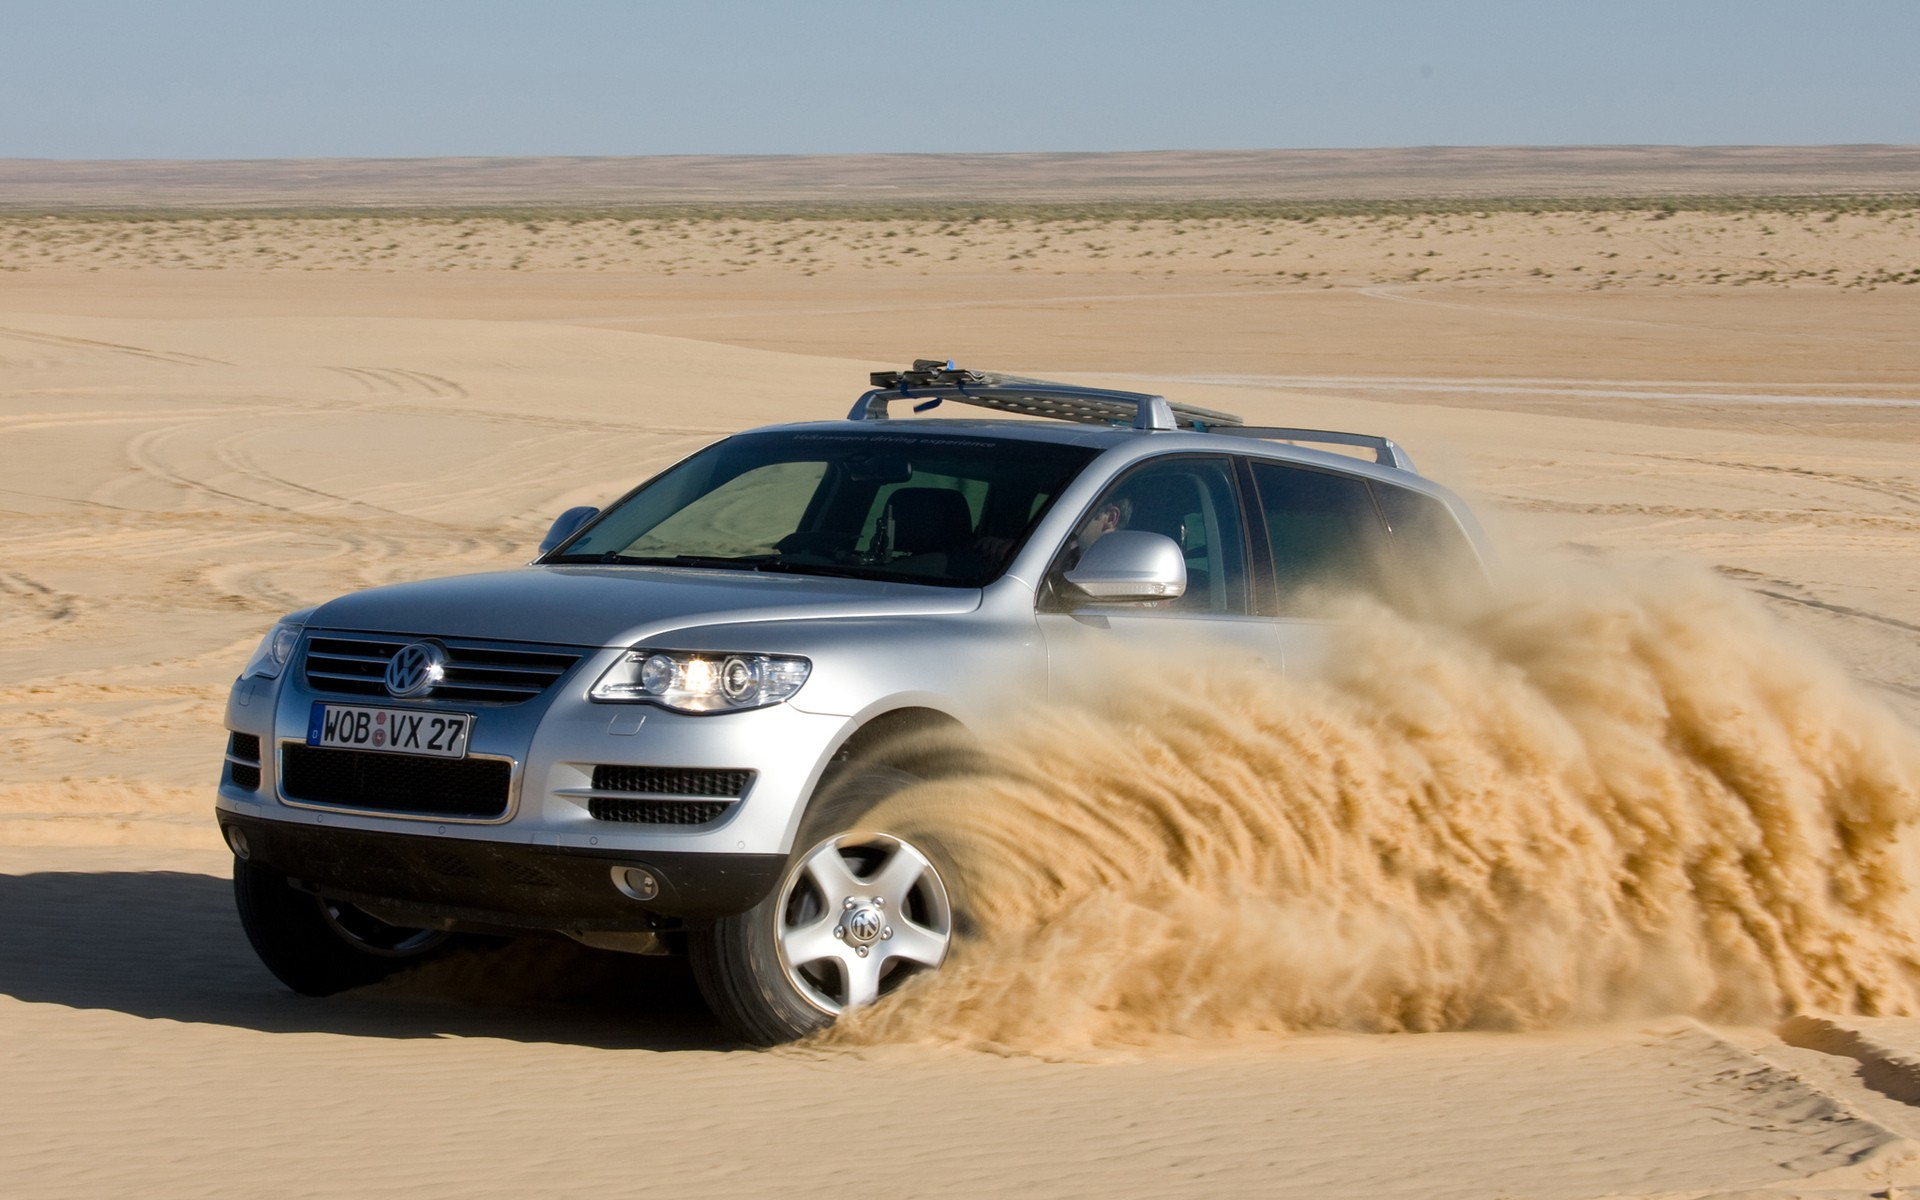 Download desktop wallpaper Volkswagen Touareg in the desert